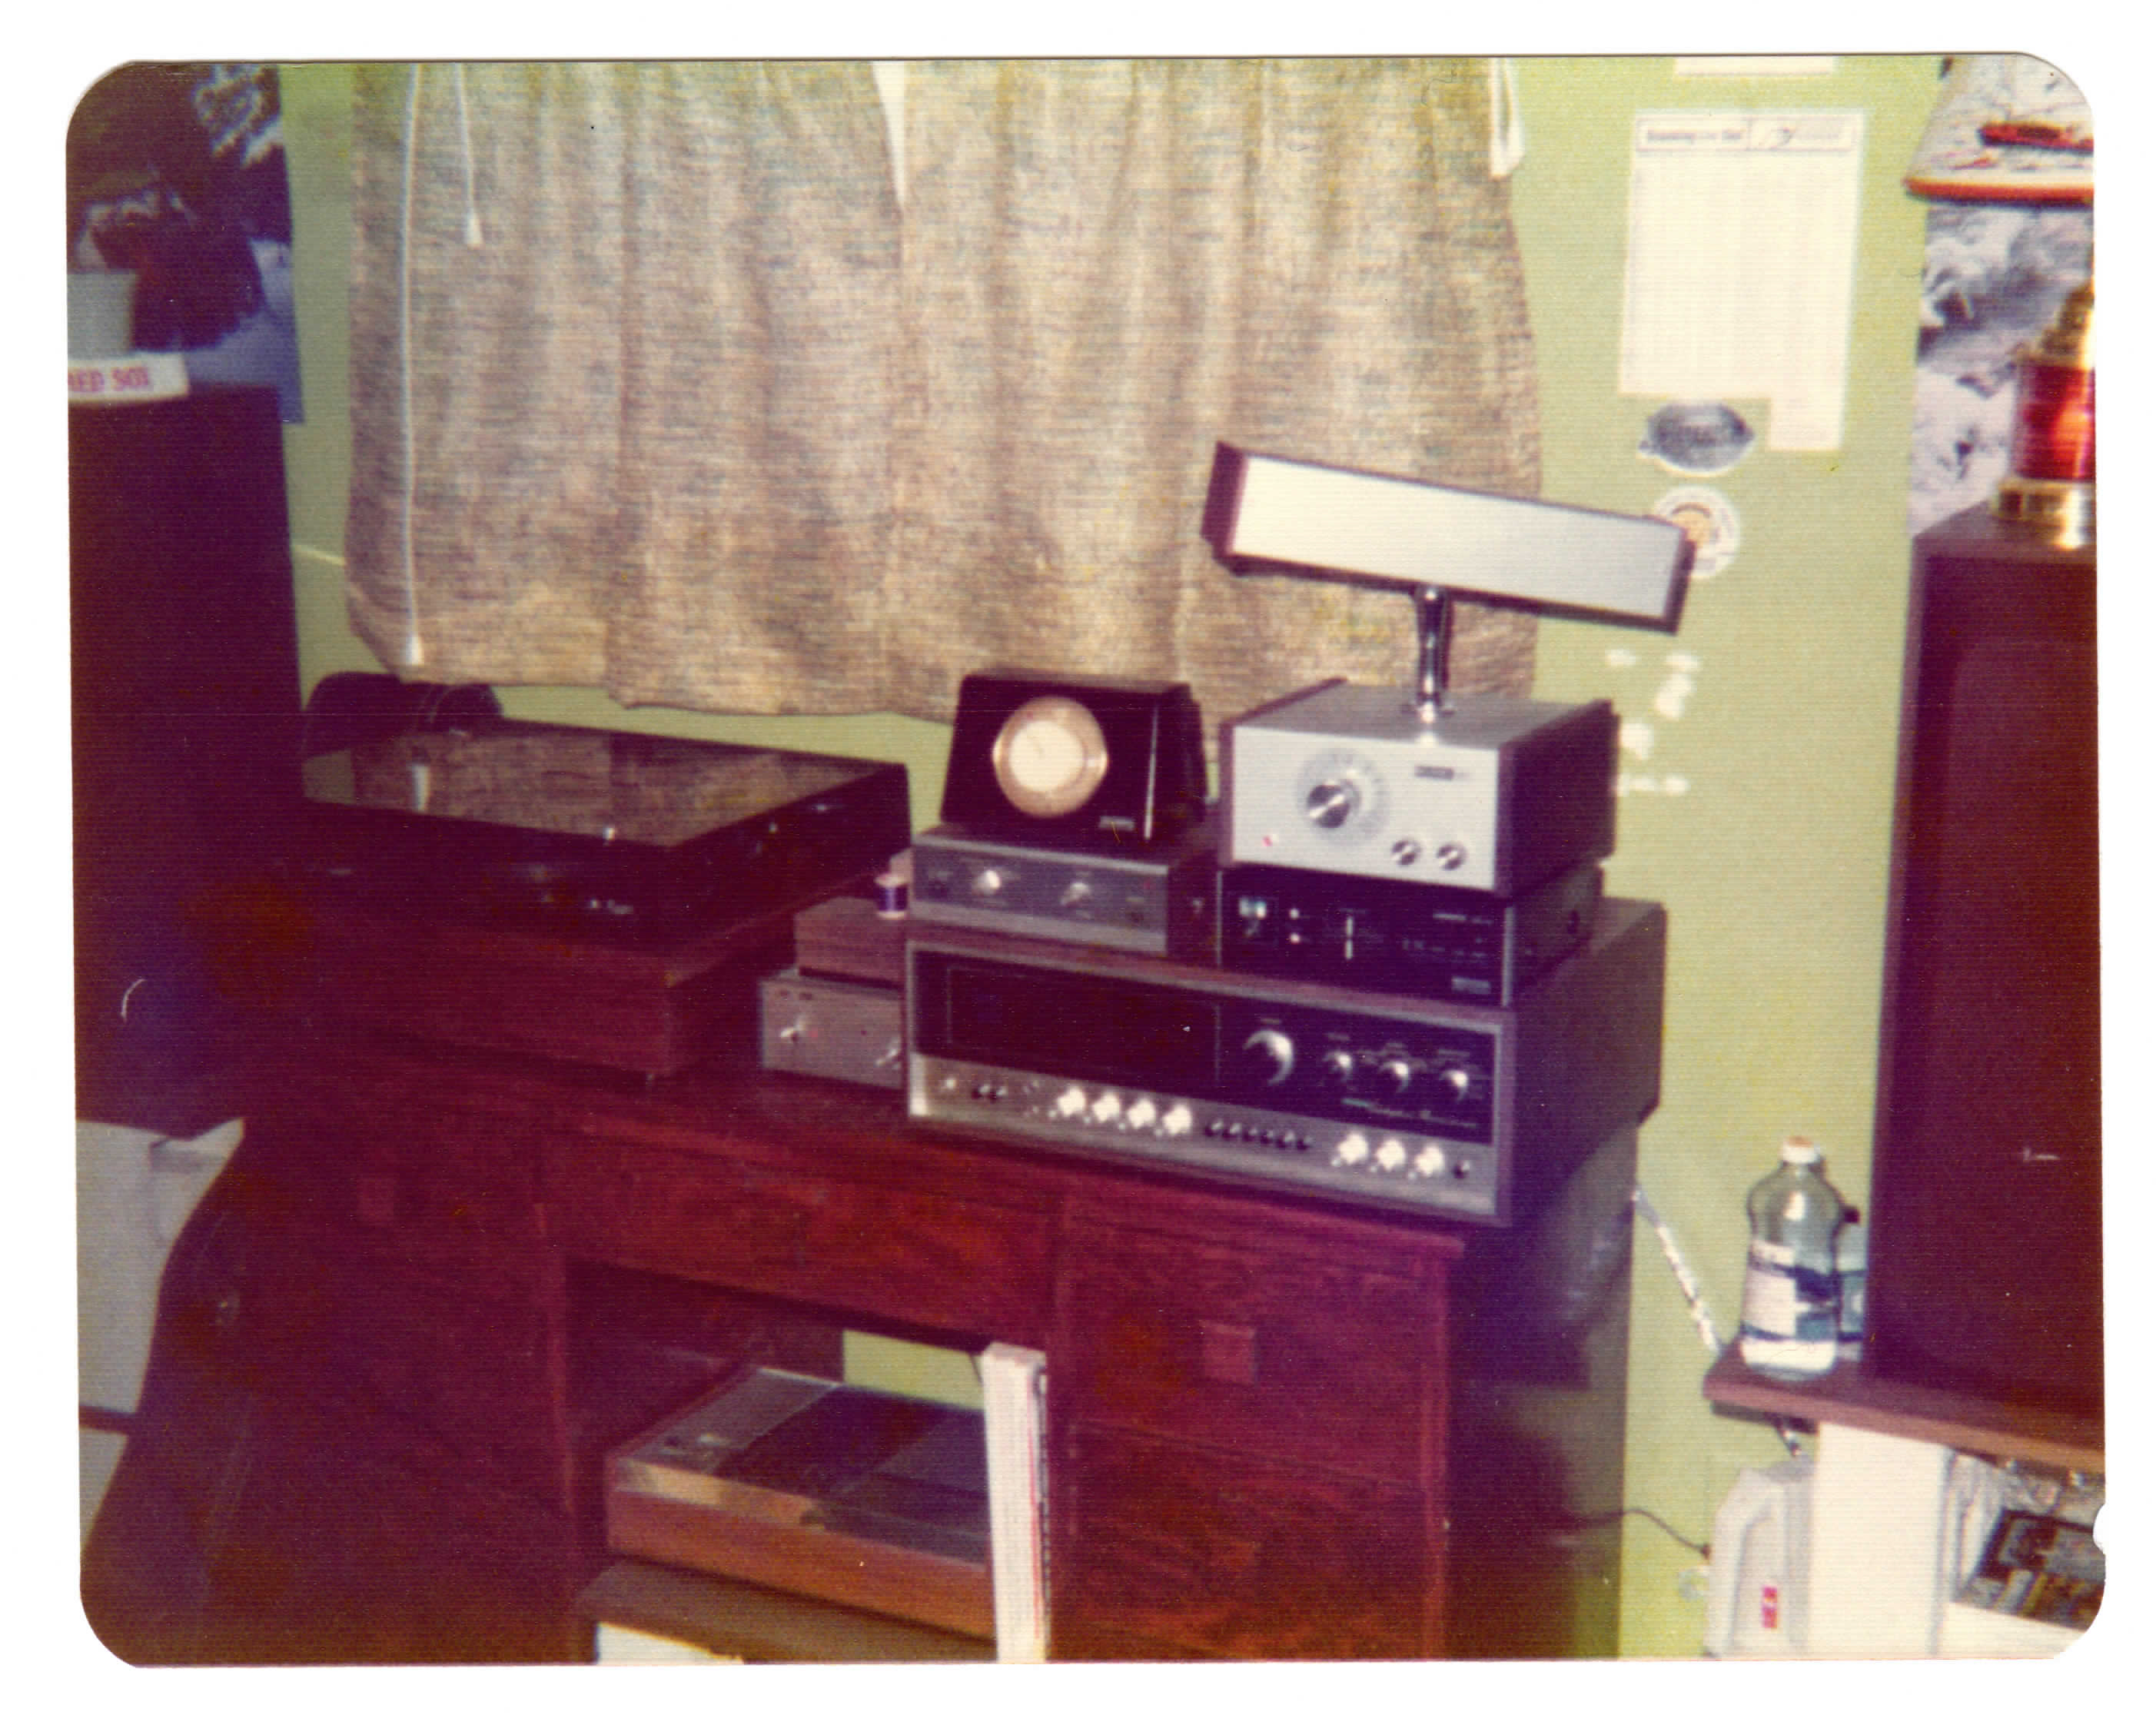 My bedroom system 1975 -Pioneer QX-8000 and Alliance rotator box